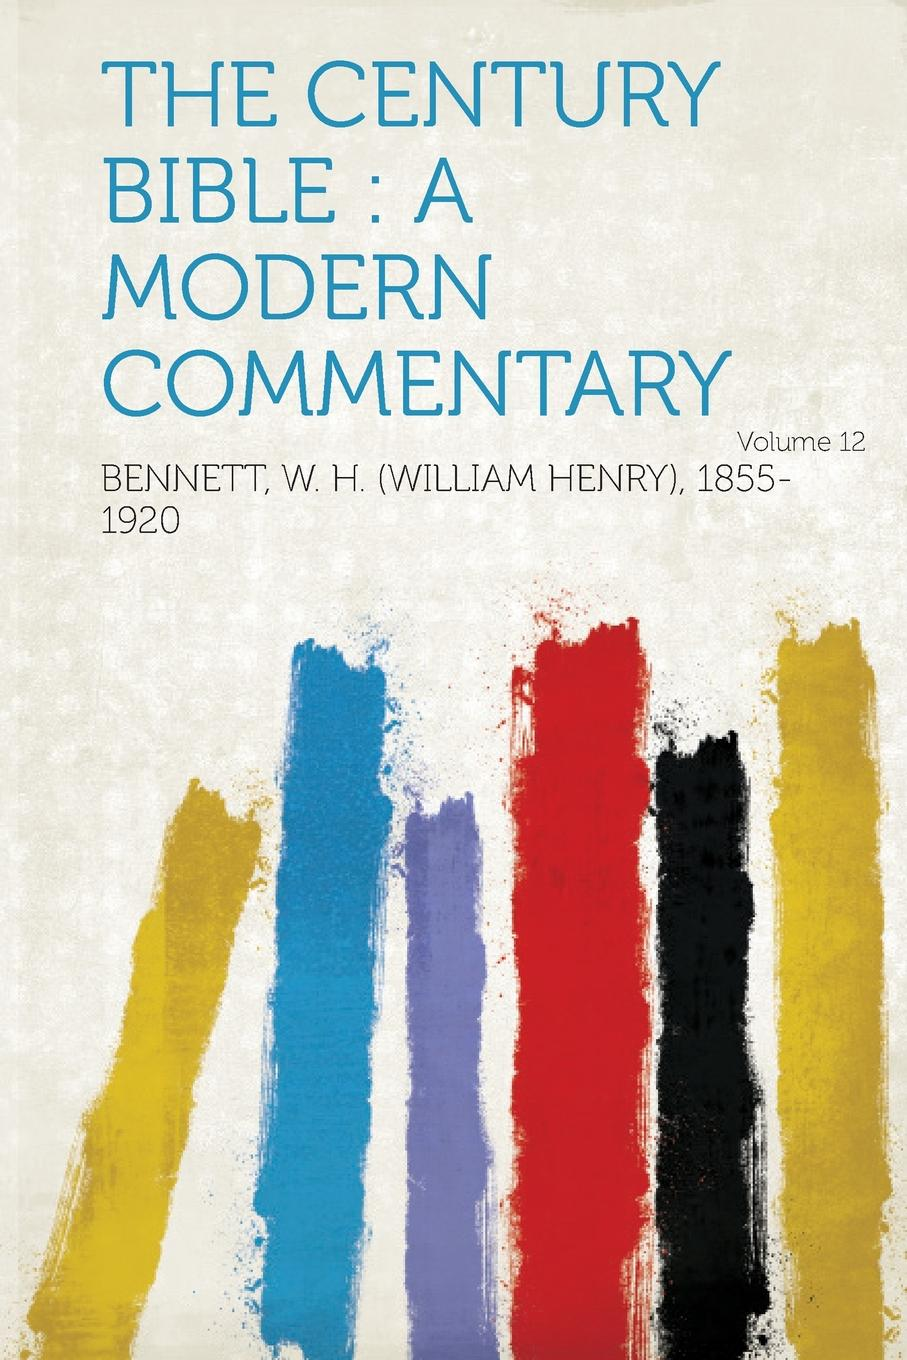 The Century Bible. A Modern Commentary Volume 12